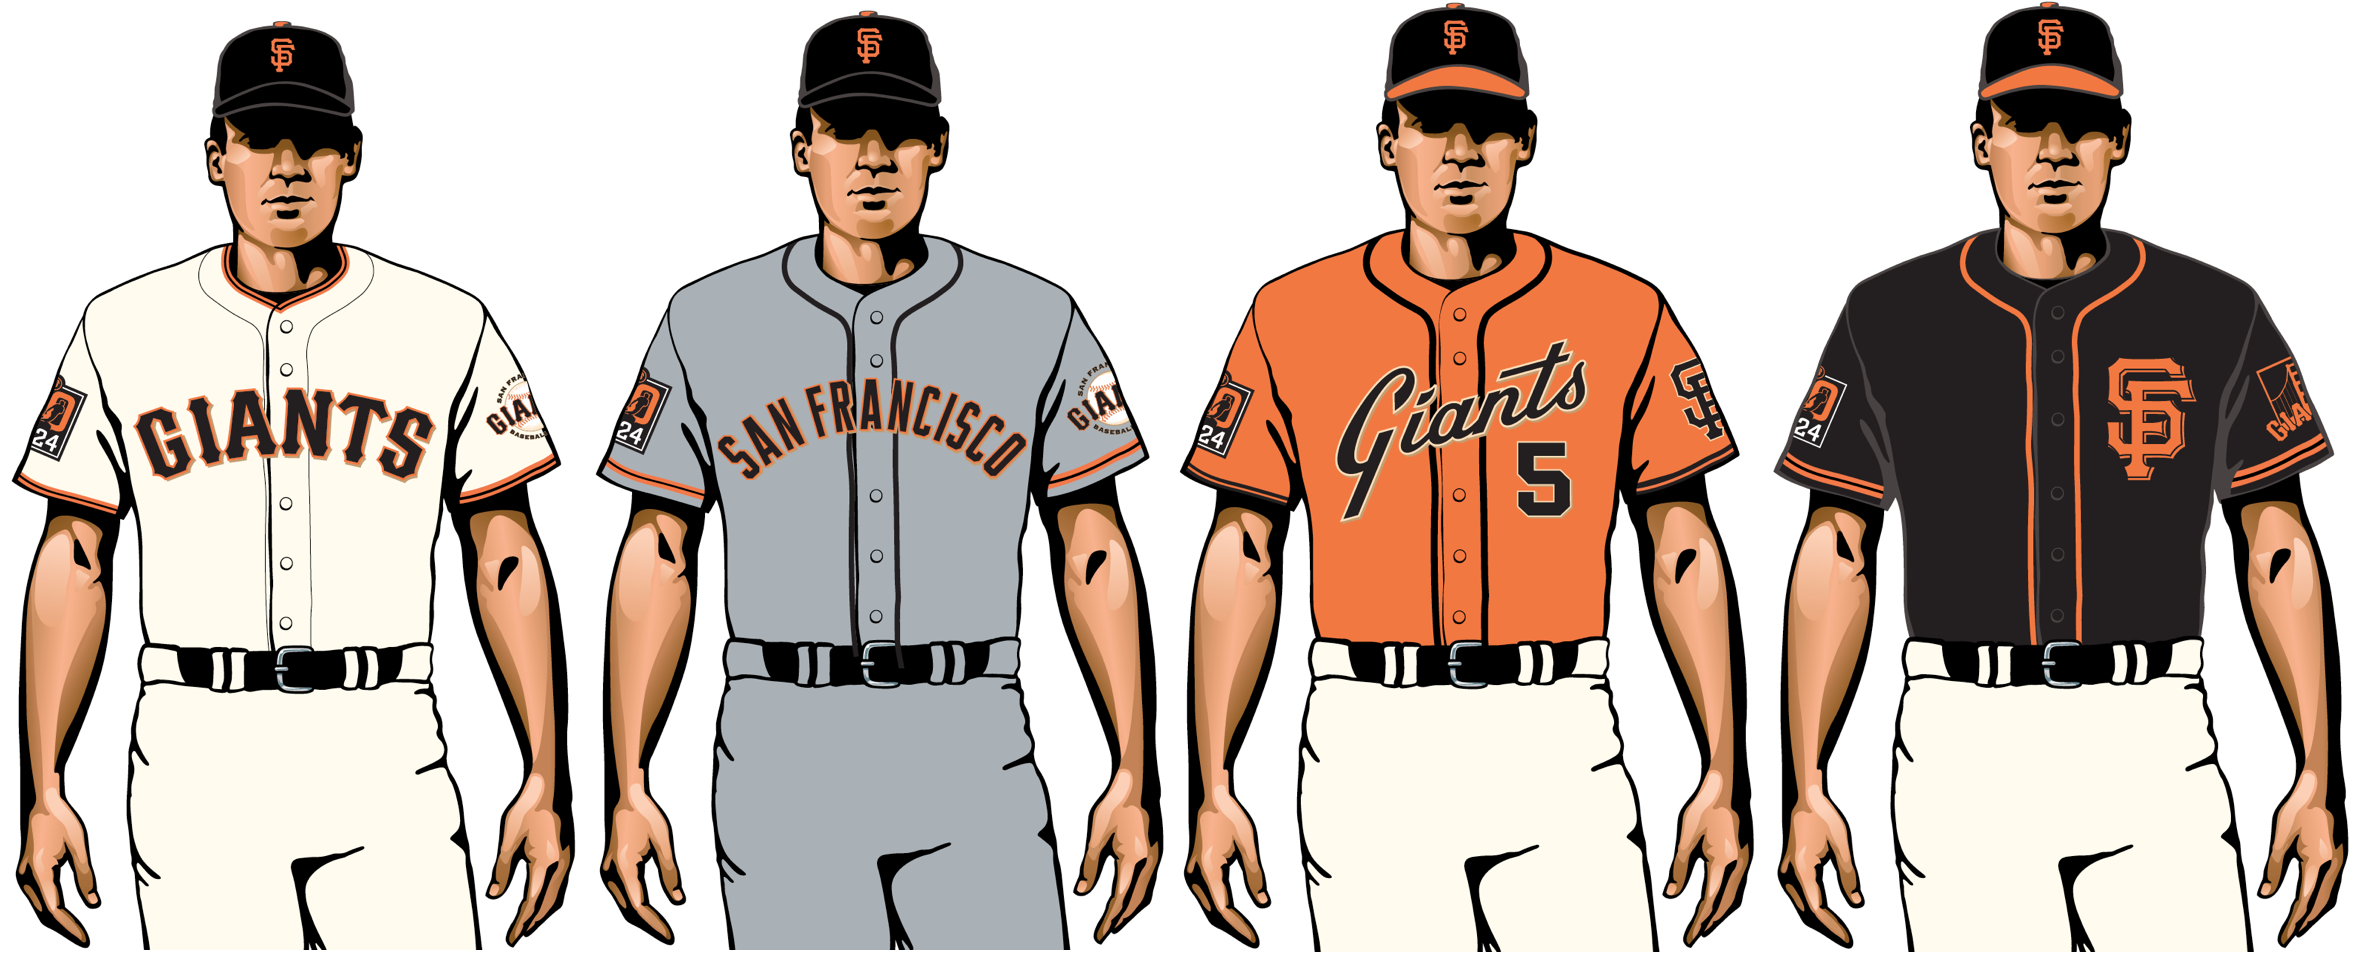 san francisco giants 2020 uniforms